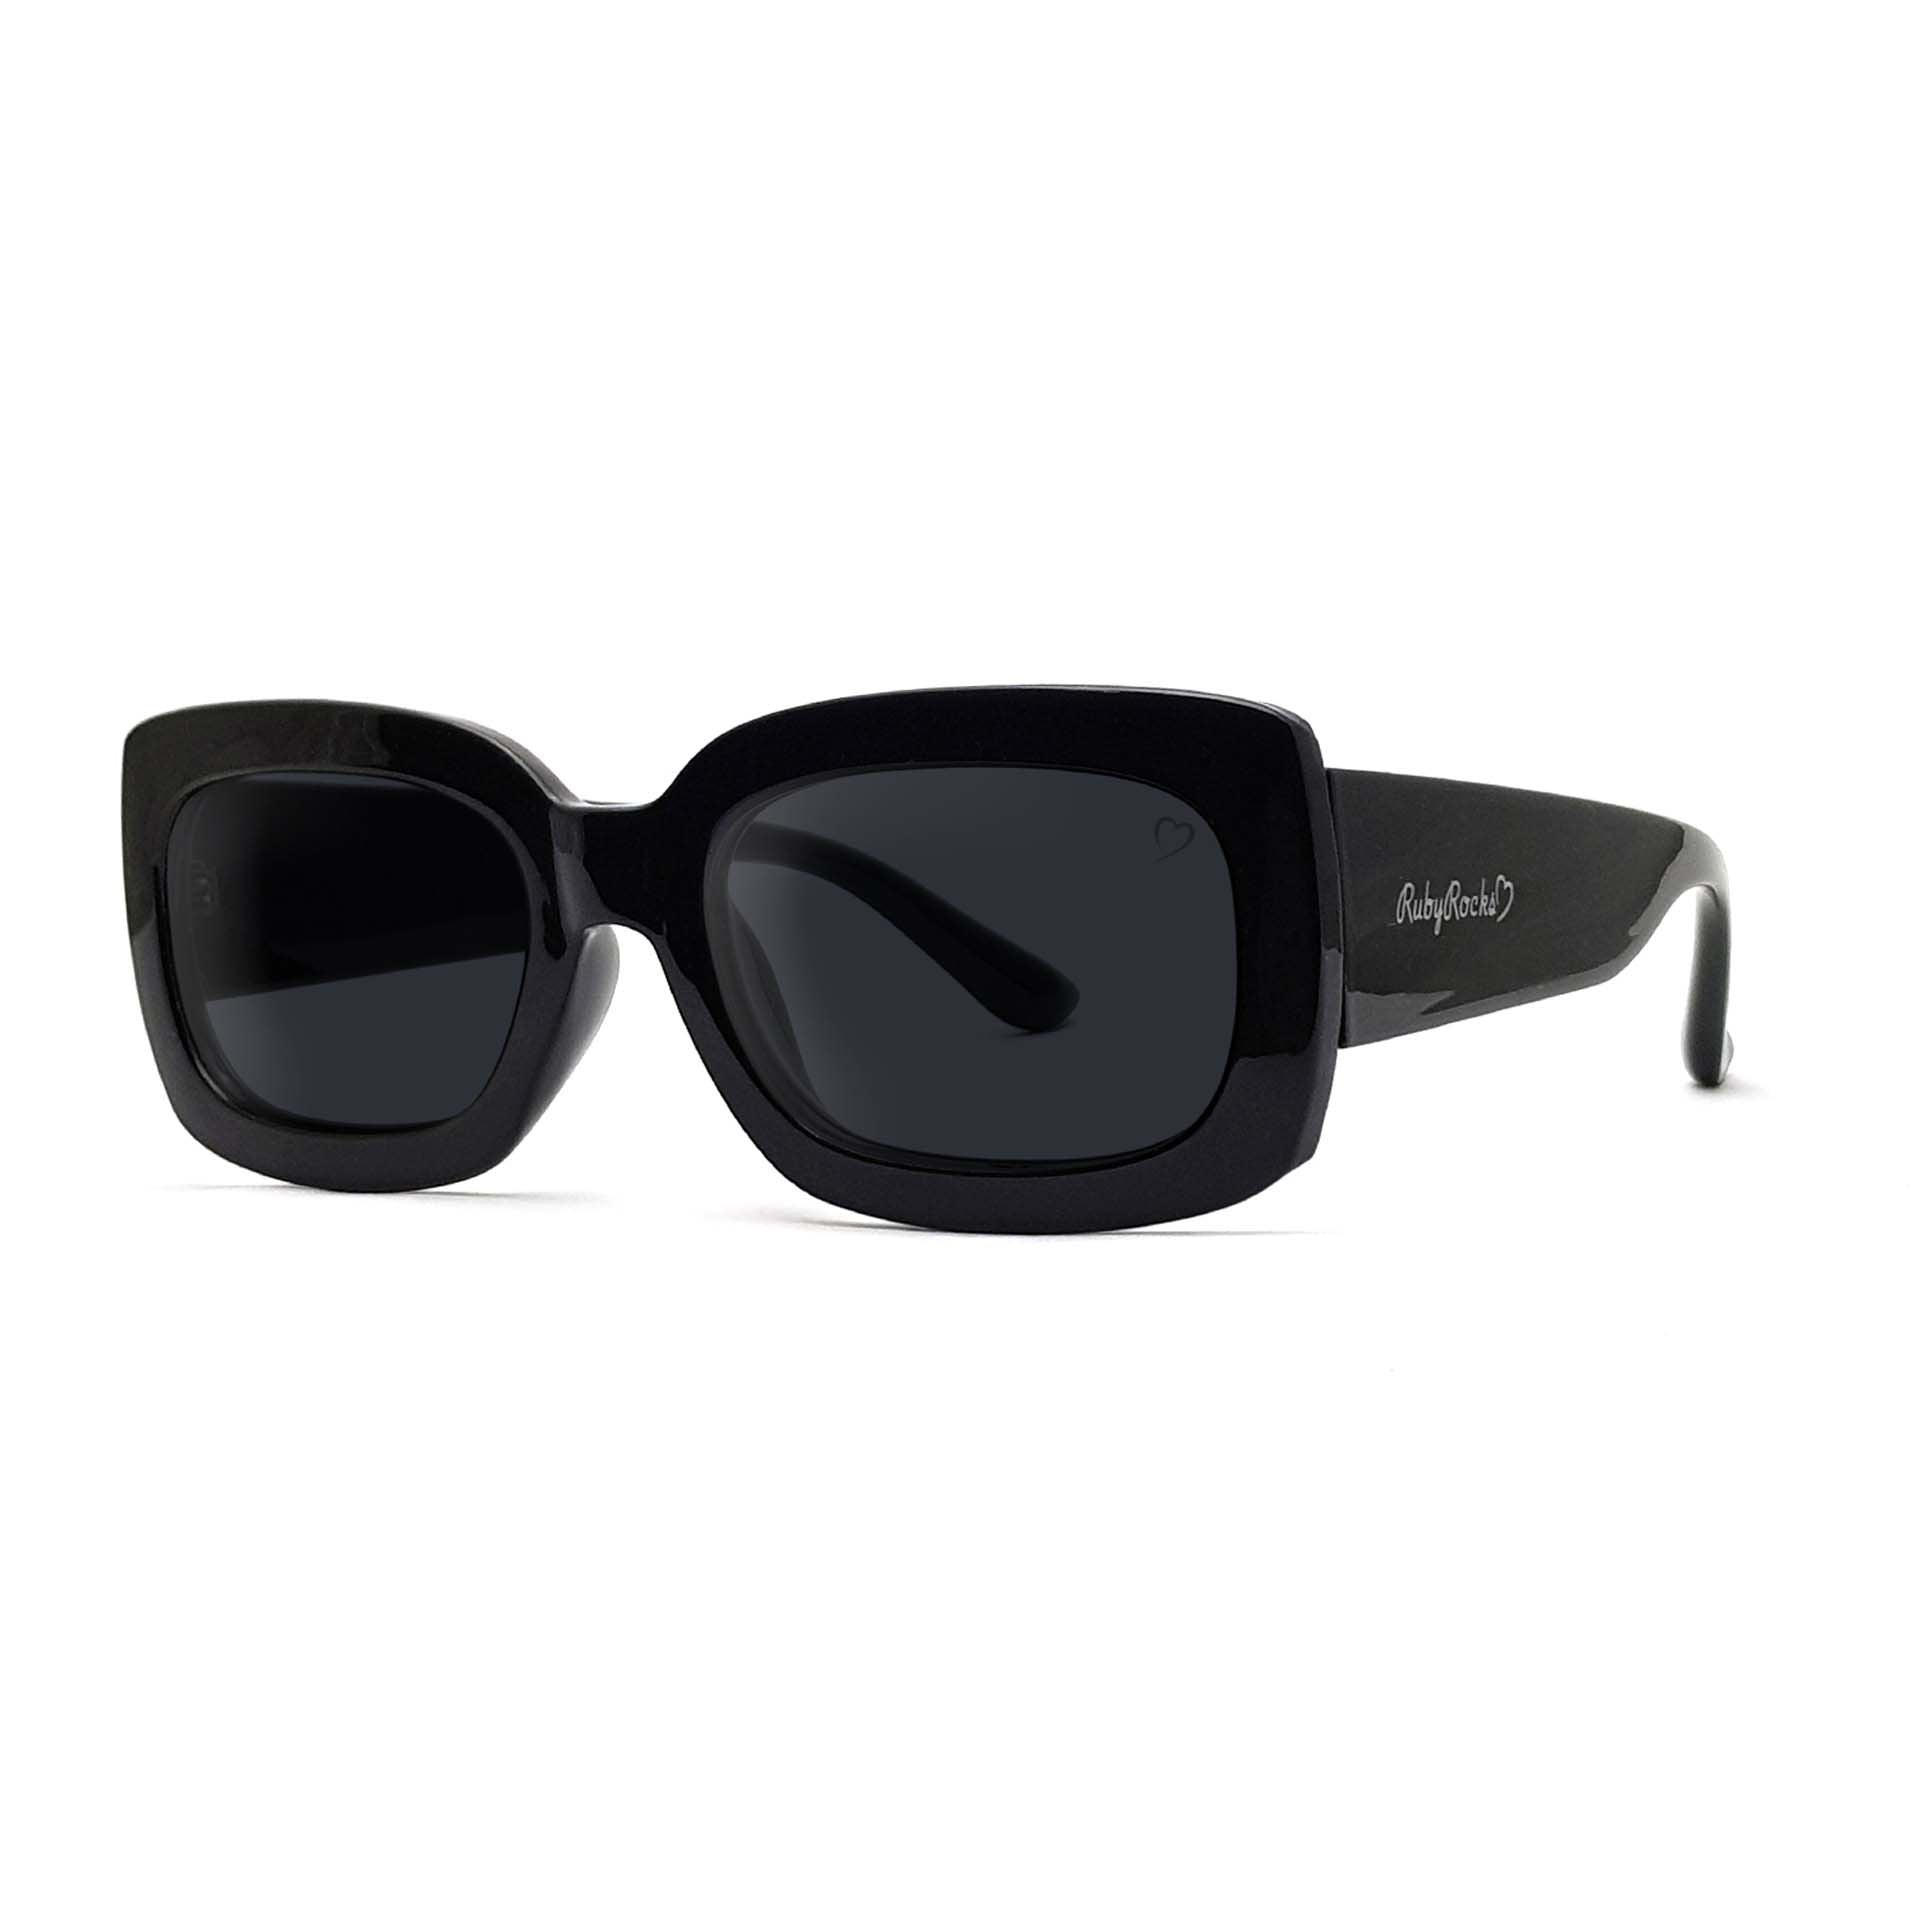 'Laura Abby' Sunglasses In Black